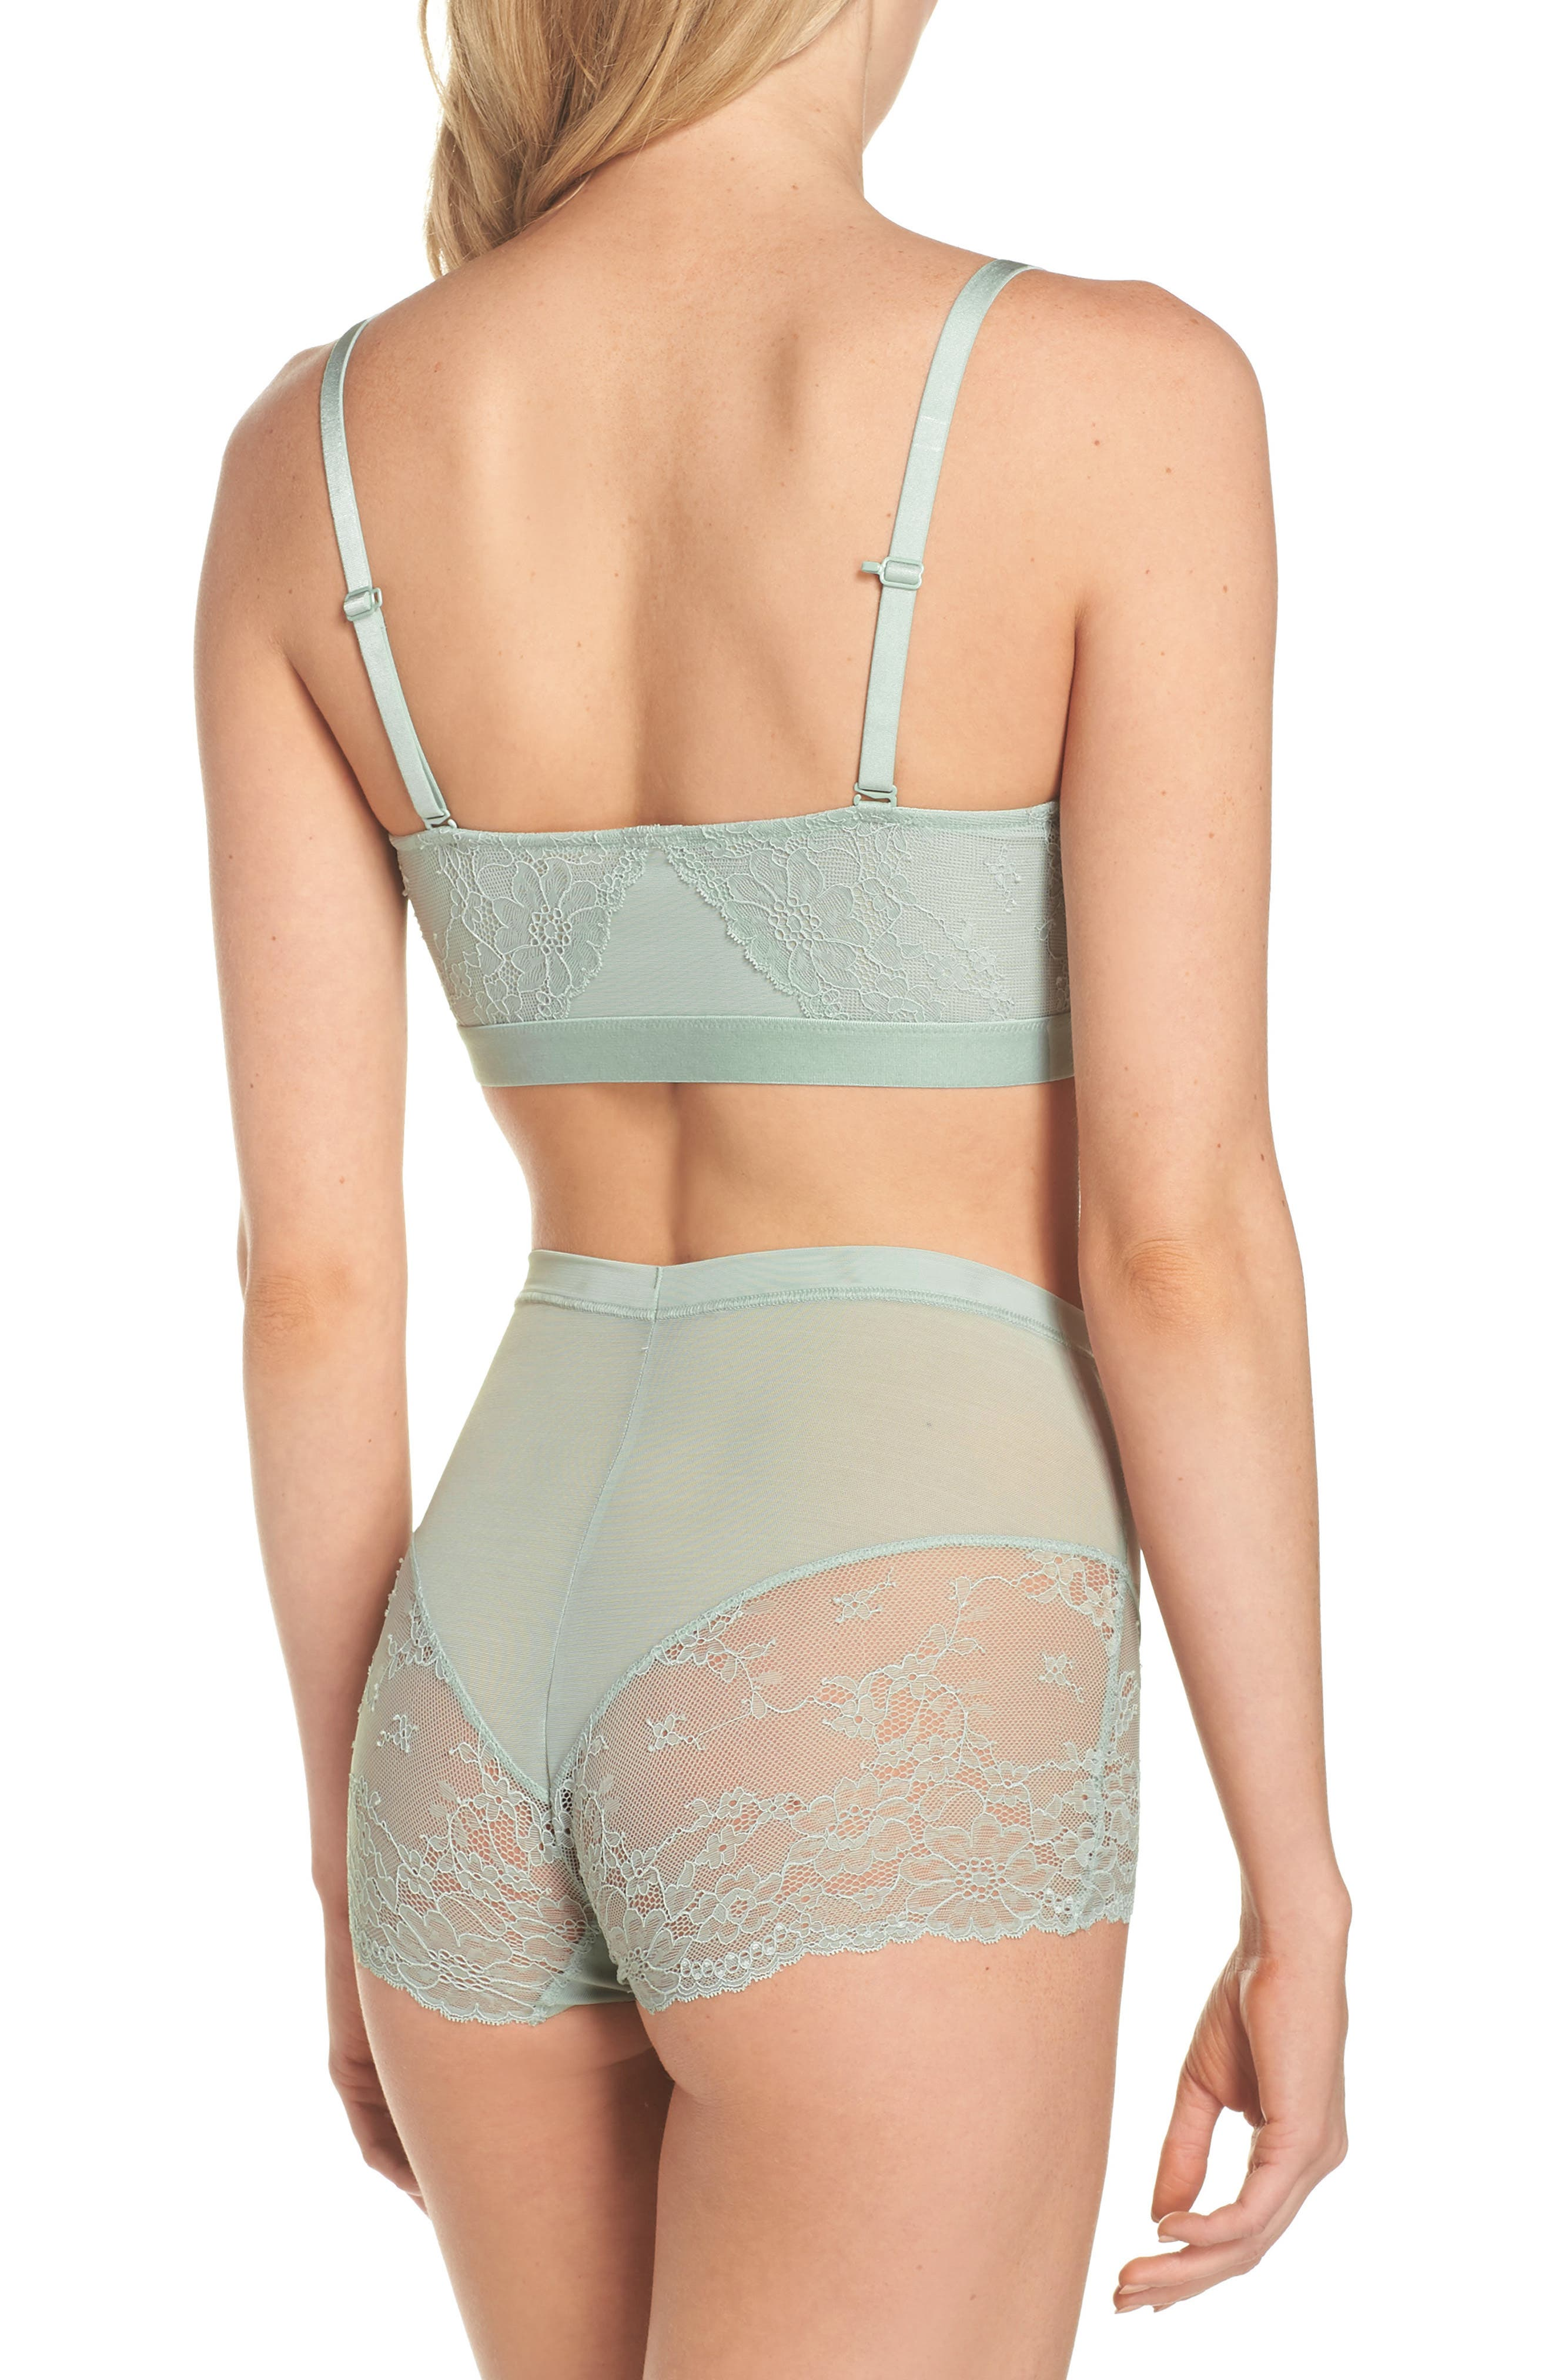 Spotlight On Lace Briefs,                             Alternate thumbnail 5, color,                             Seafoam Green